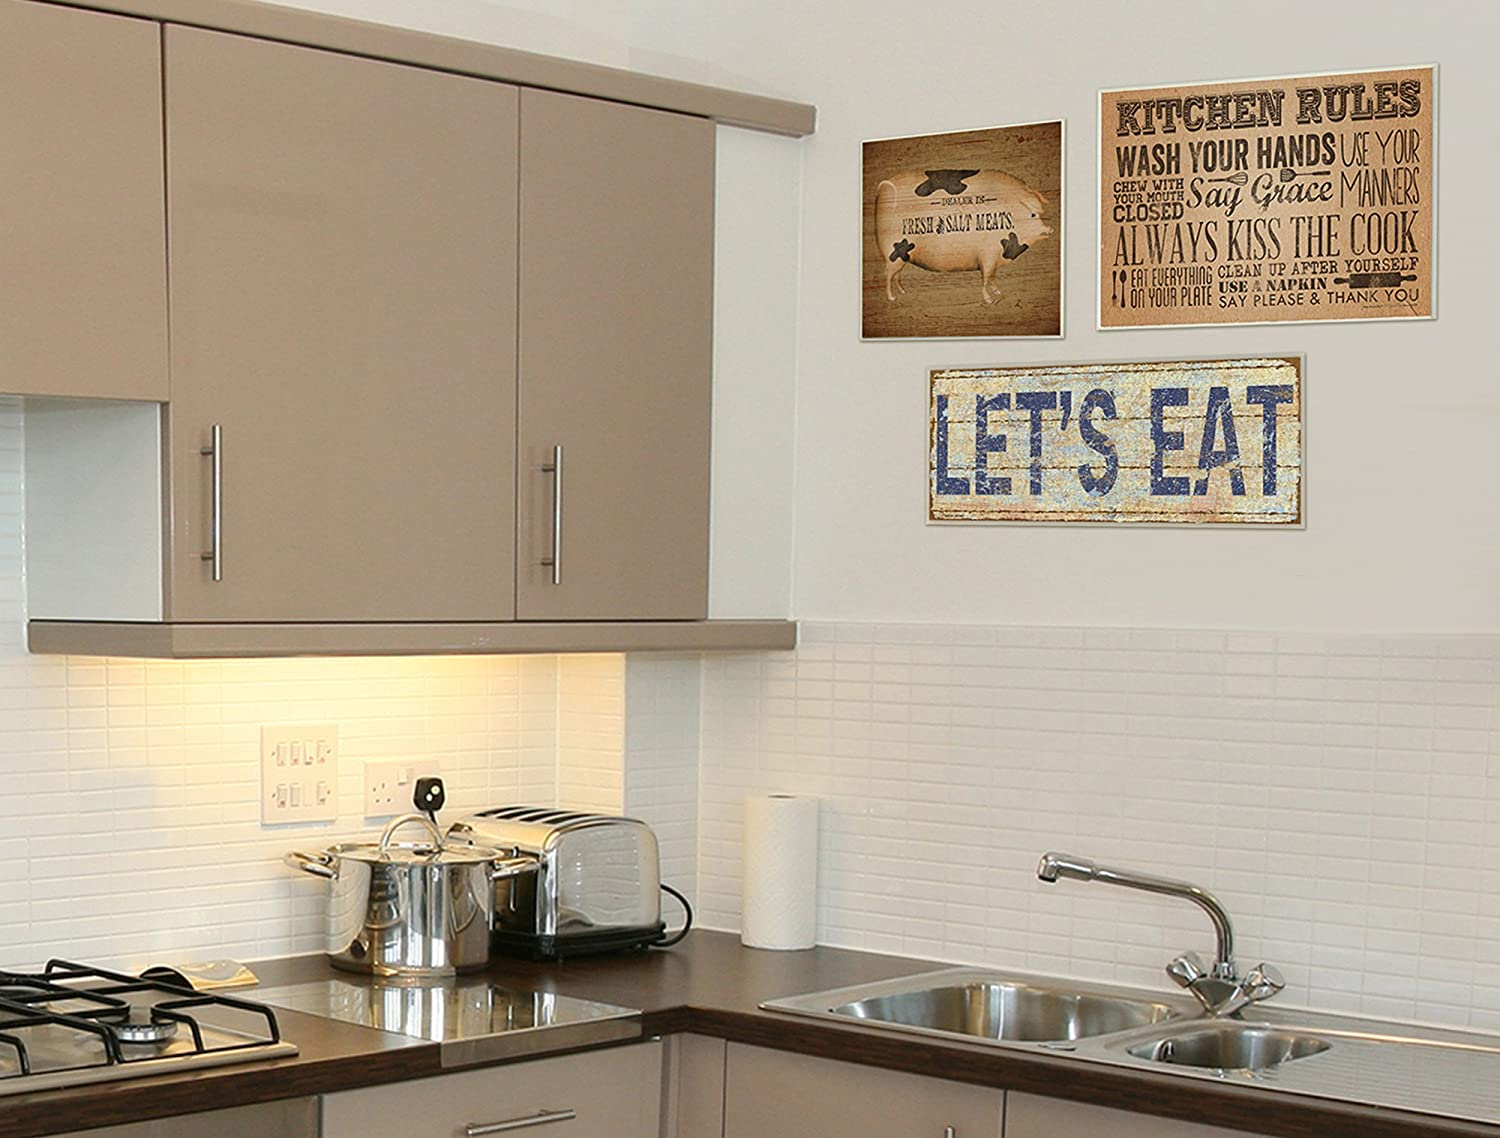 Proudly Made in USA Stupell Industries kwp-1004 The Stupell Home Decor Collection Lets Eat Distressed Kitchen Wall Plaque 7 x 0.5 x 17